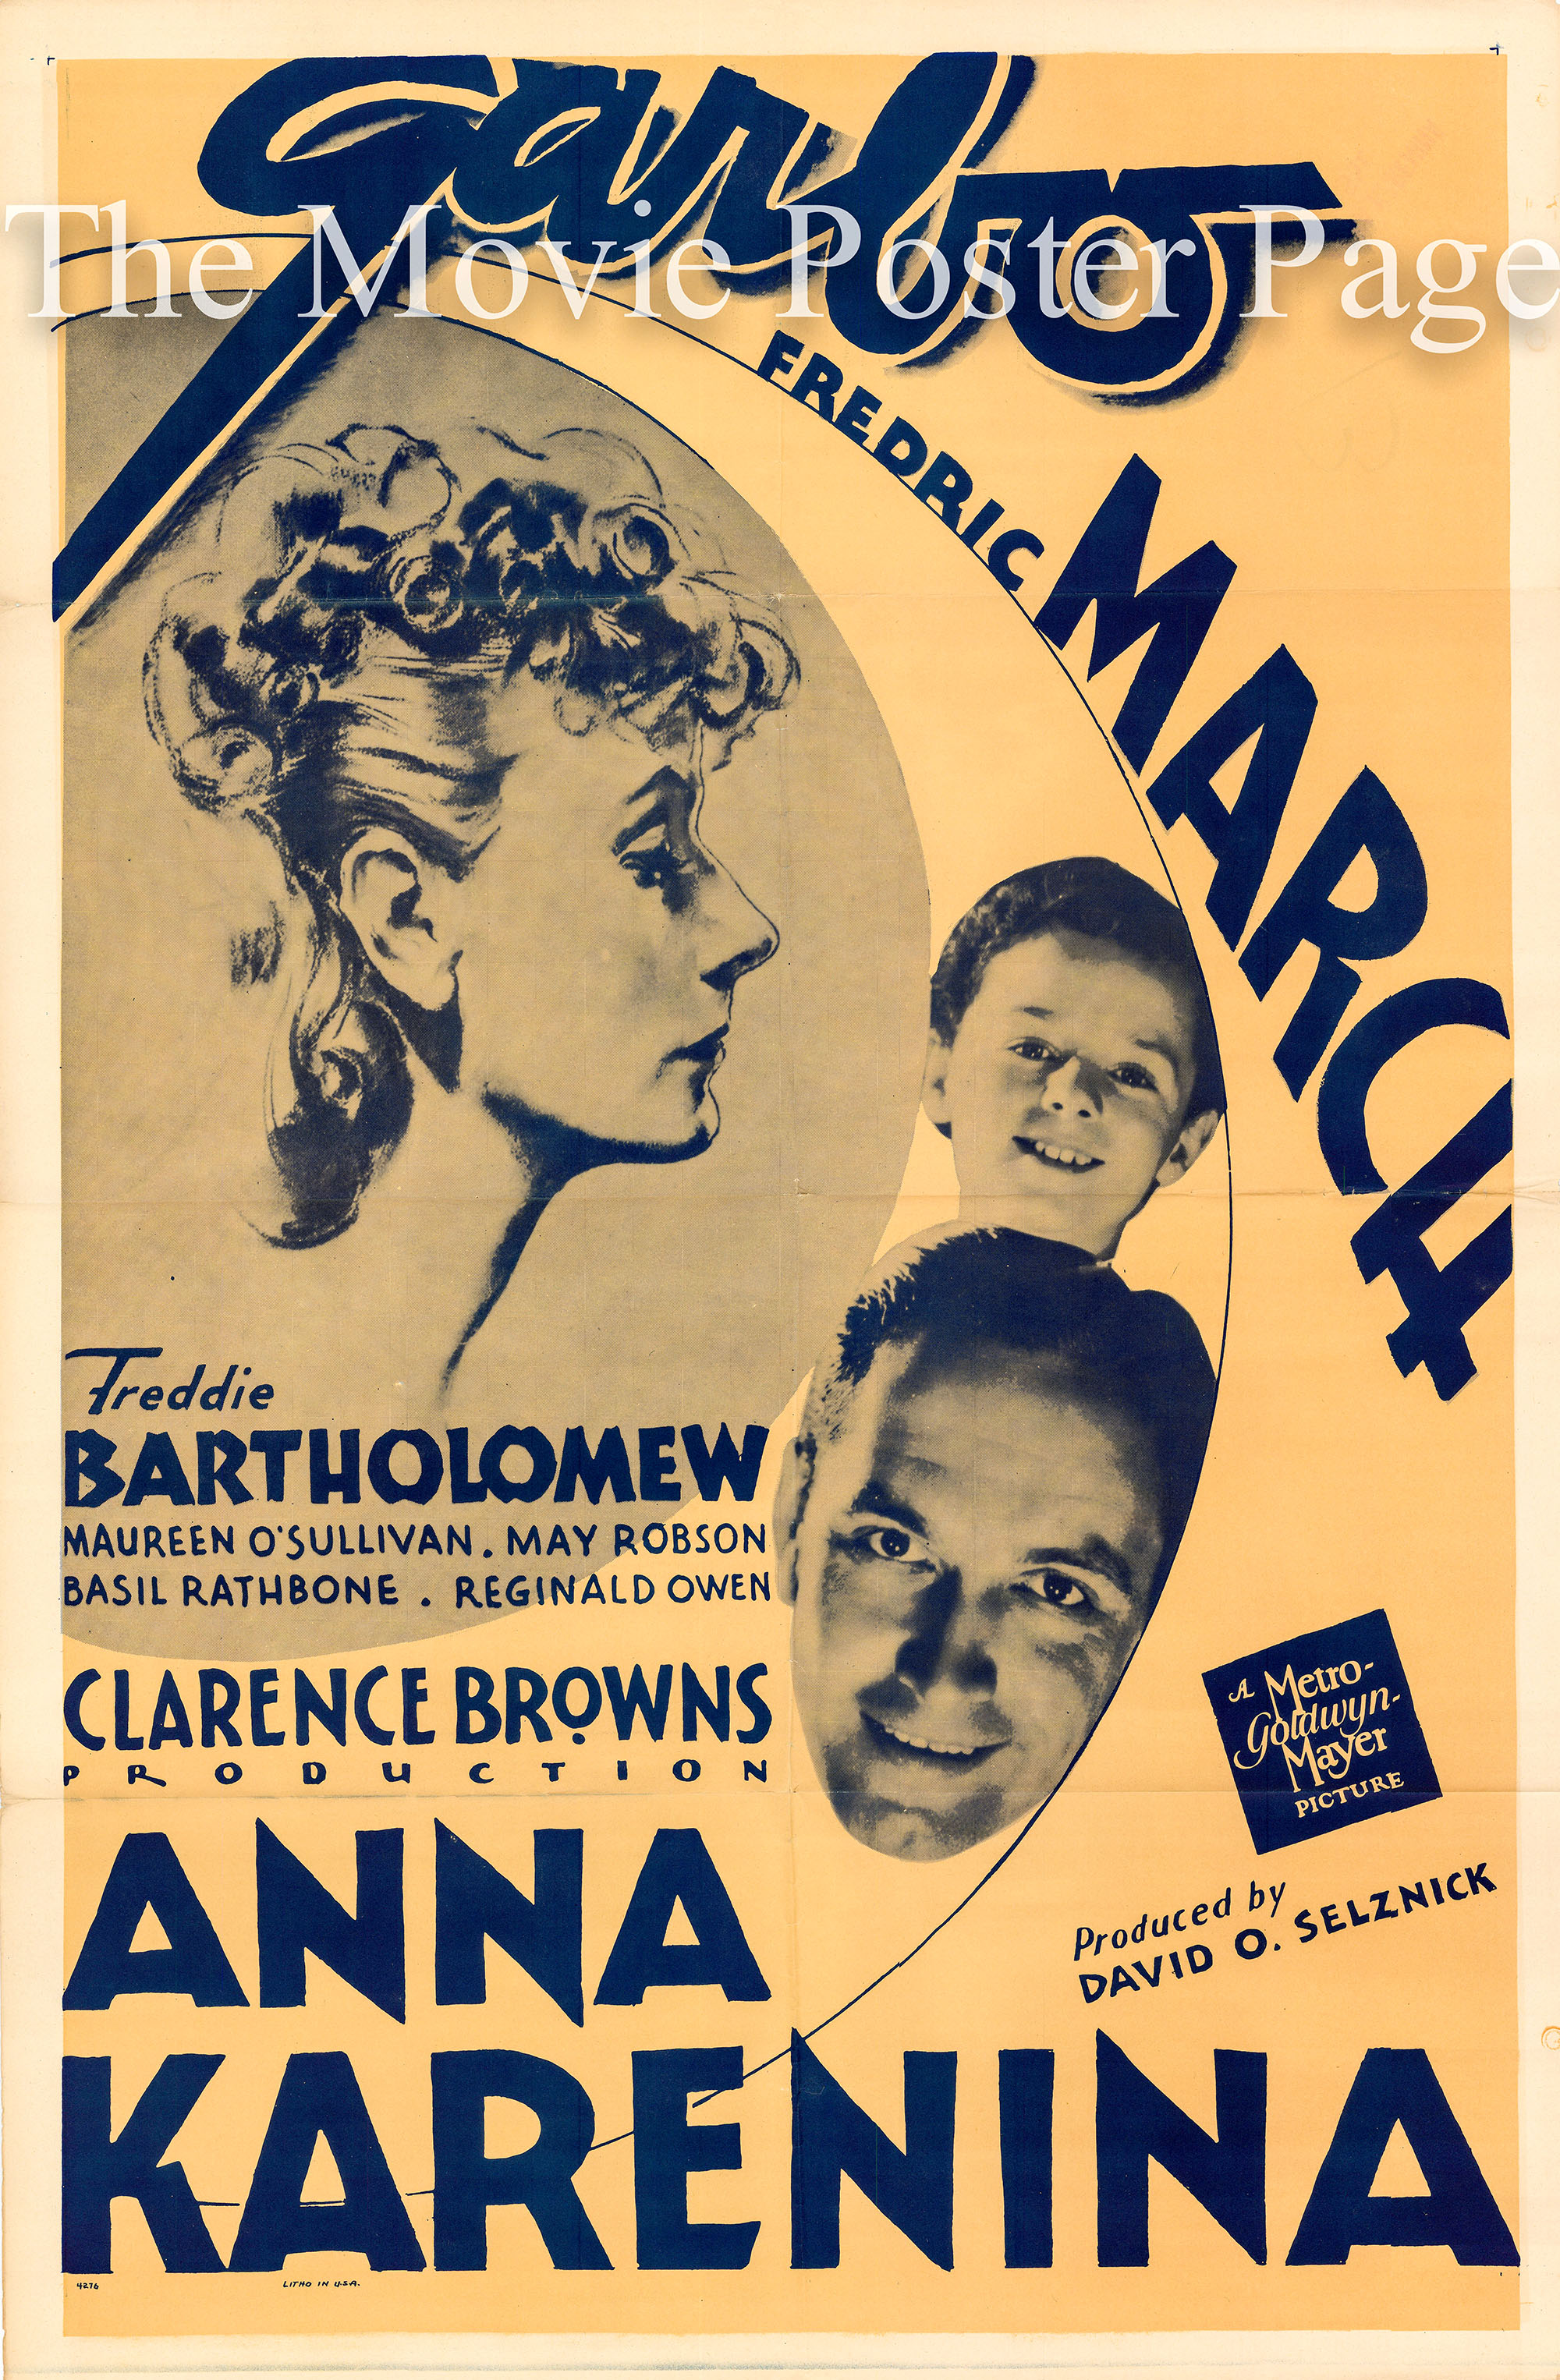 Pictured is a US promotional one-sheet poster for a 1950s rerelease of the 1935 Clarence Brown film Anna Karenina starring Greta Garbo as Anna Karenina.